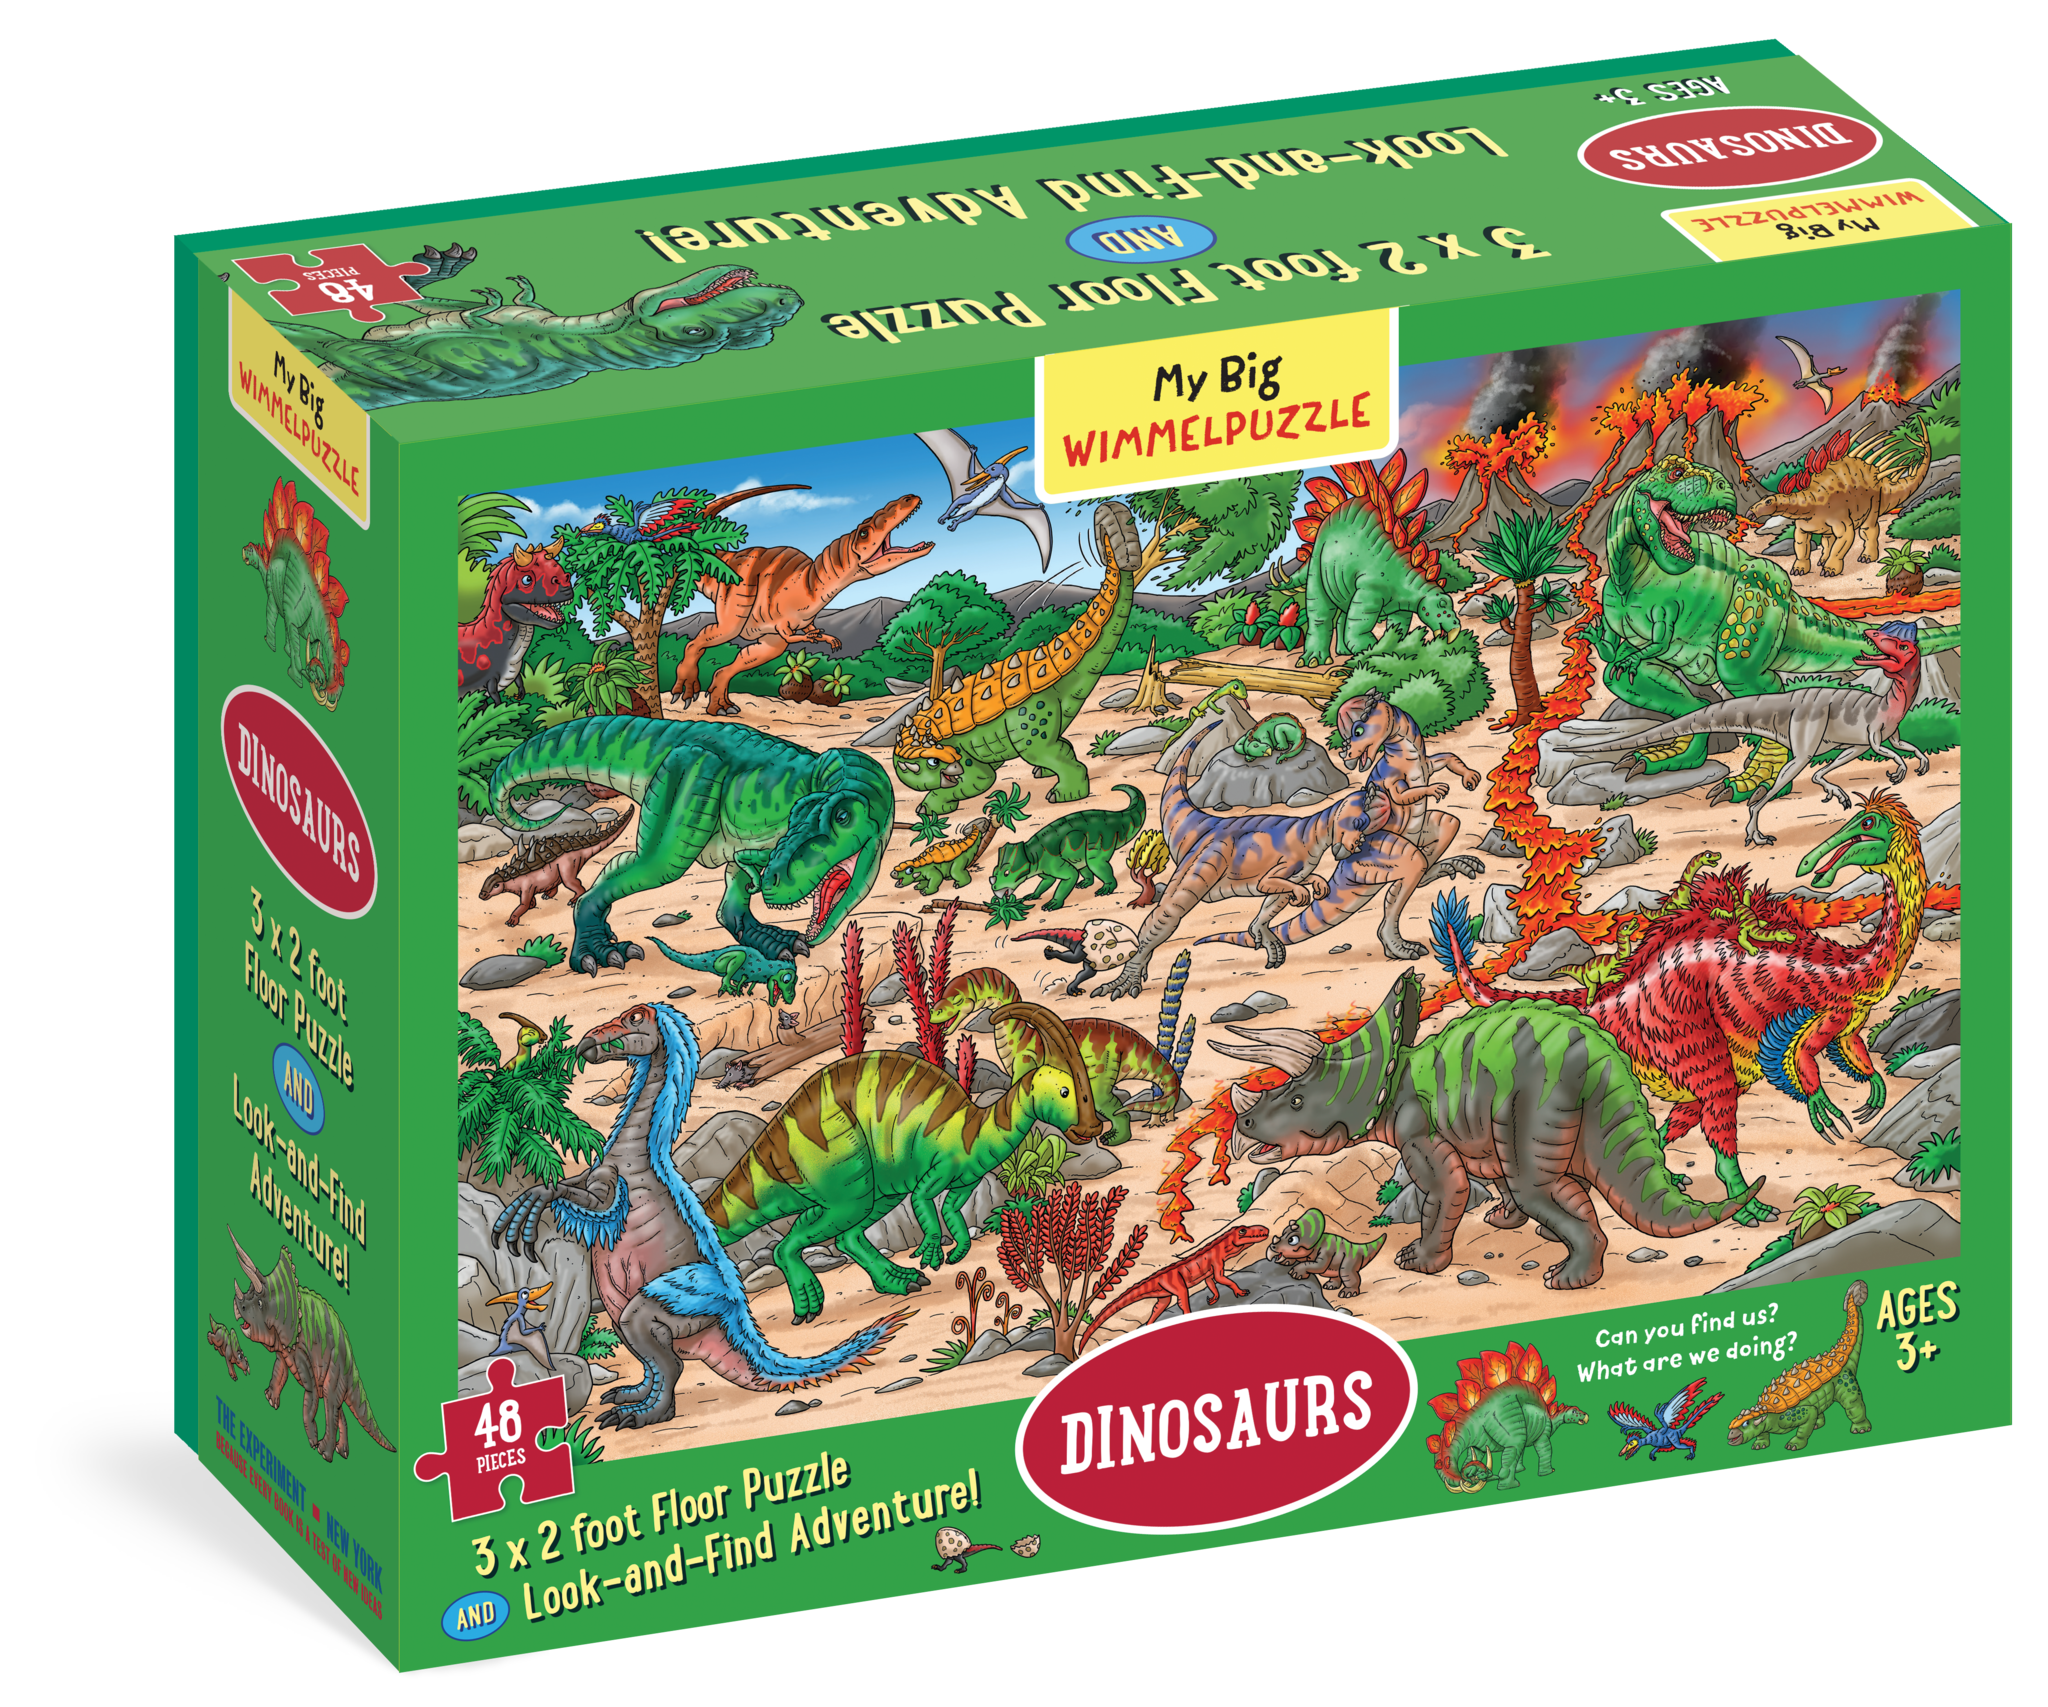 My Big Wimmelpuzzle - Dinosaurs